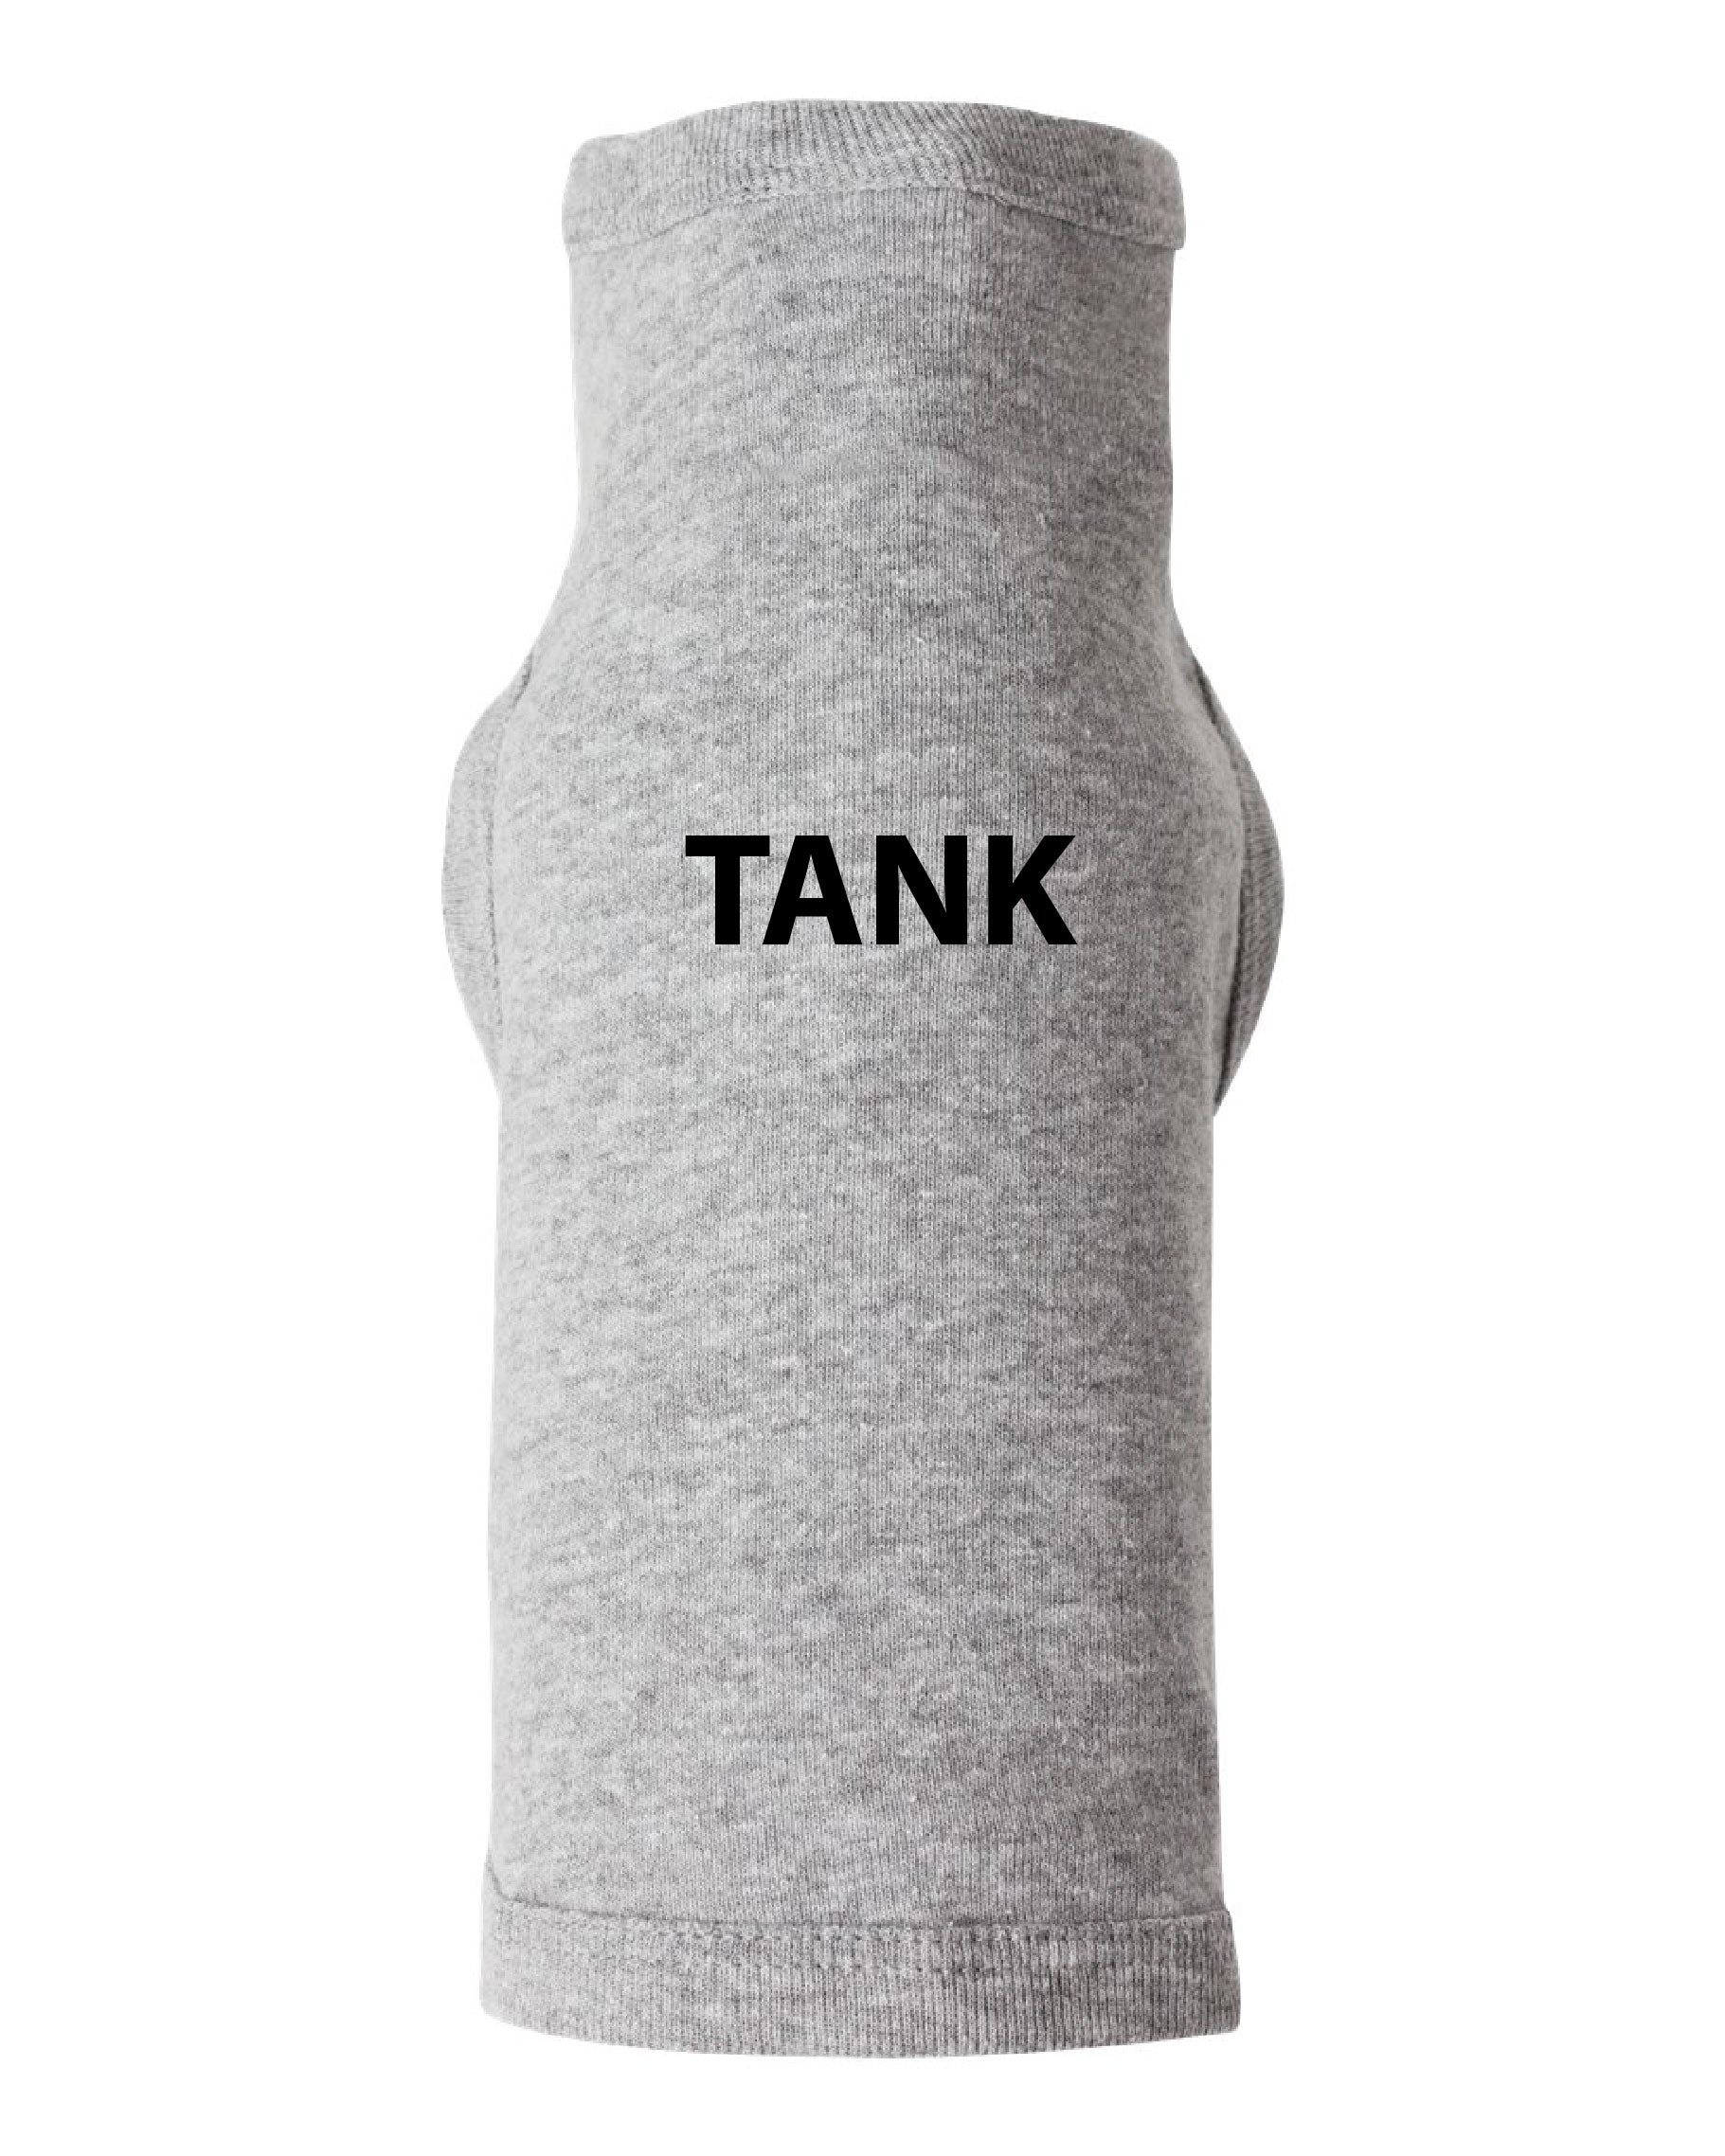 Doggie Tank - Custom Embroidered with your dogs name - MegFord Design